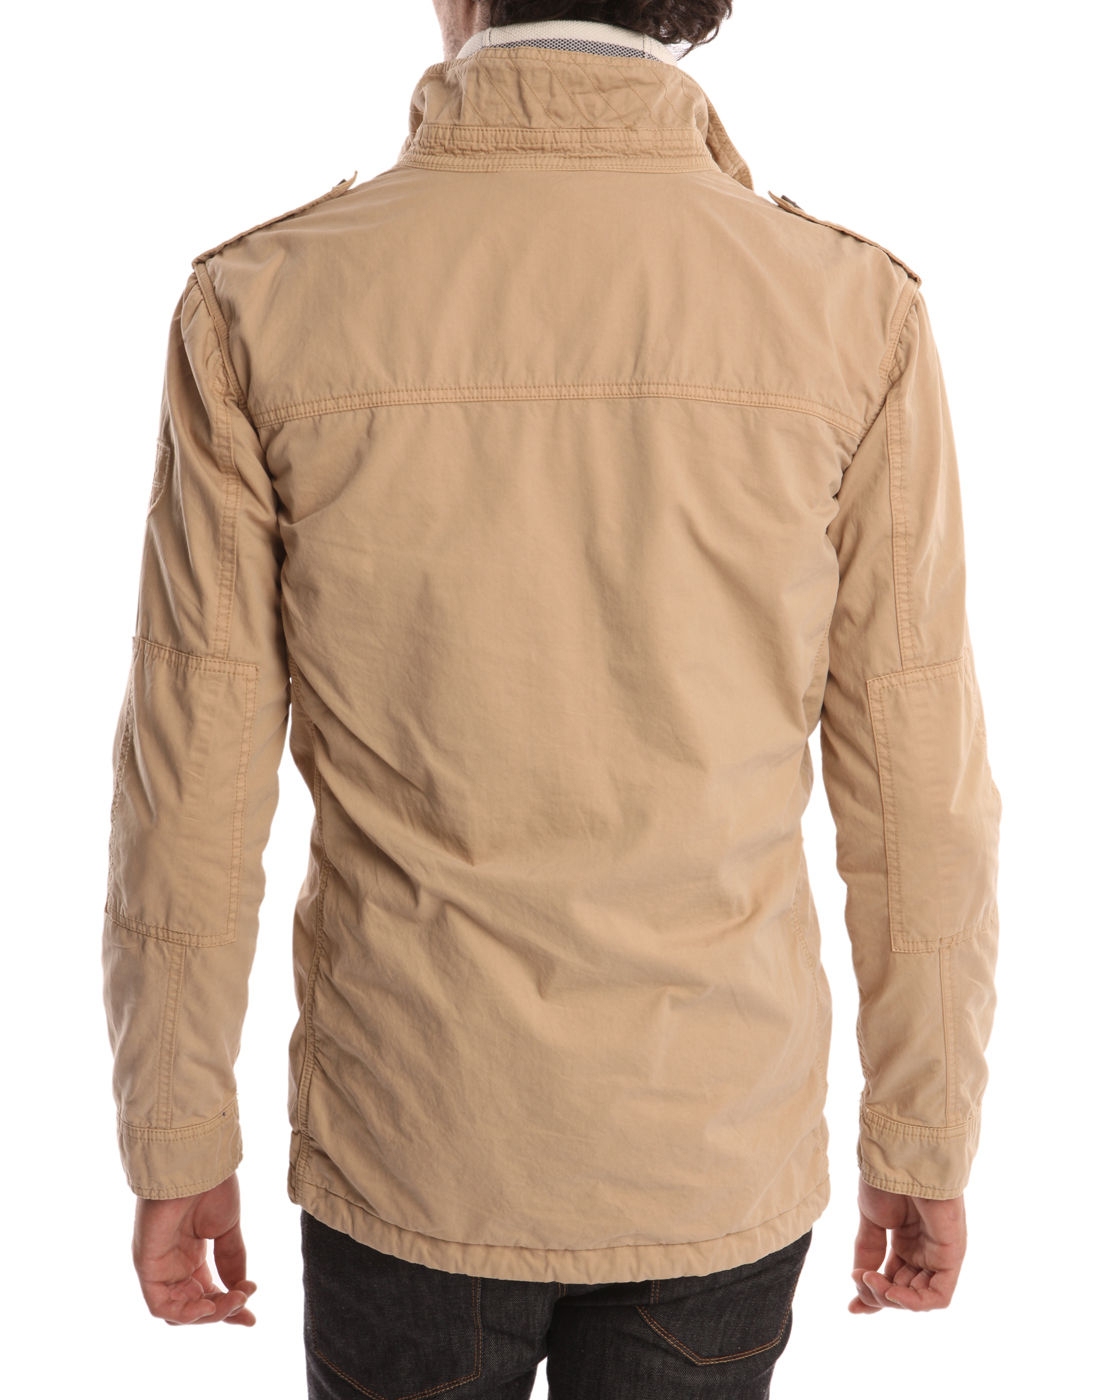 tommy hilfiger kingsly beige cotton safari jacket in natural for men lyst. Black Bedroom Furniture Sets. Home Design Ideas